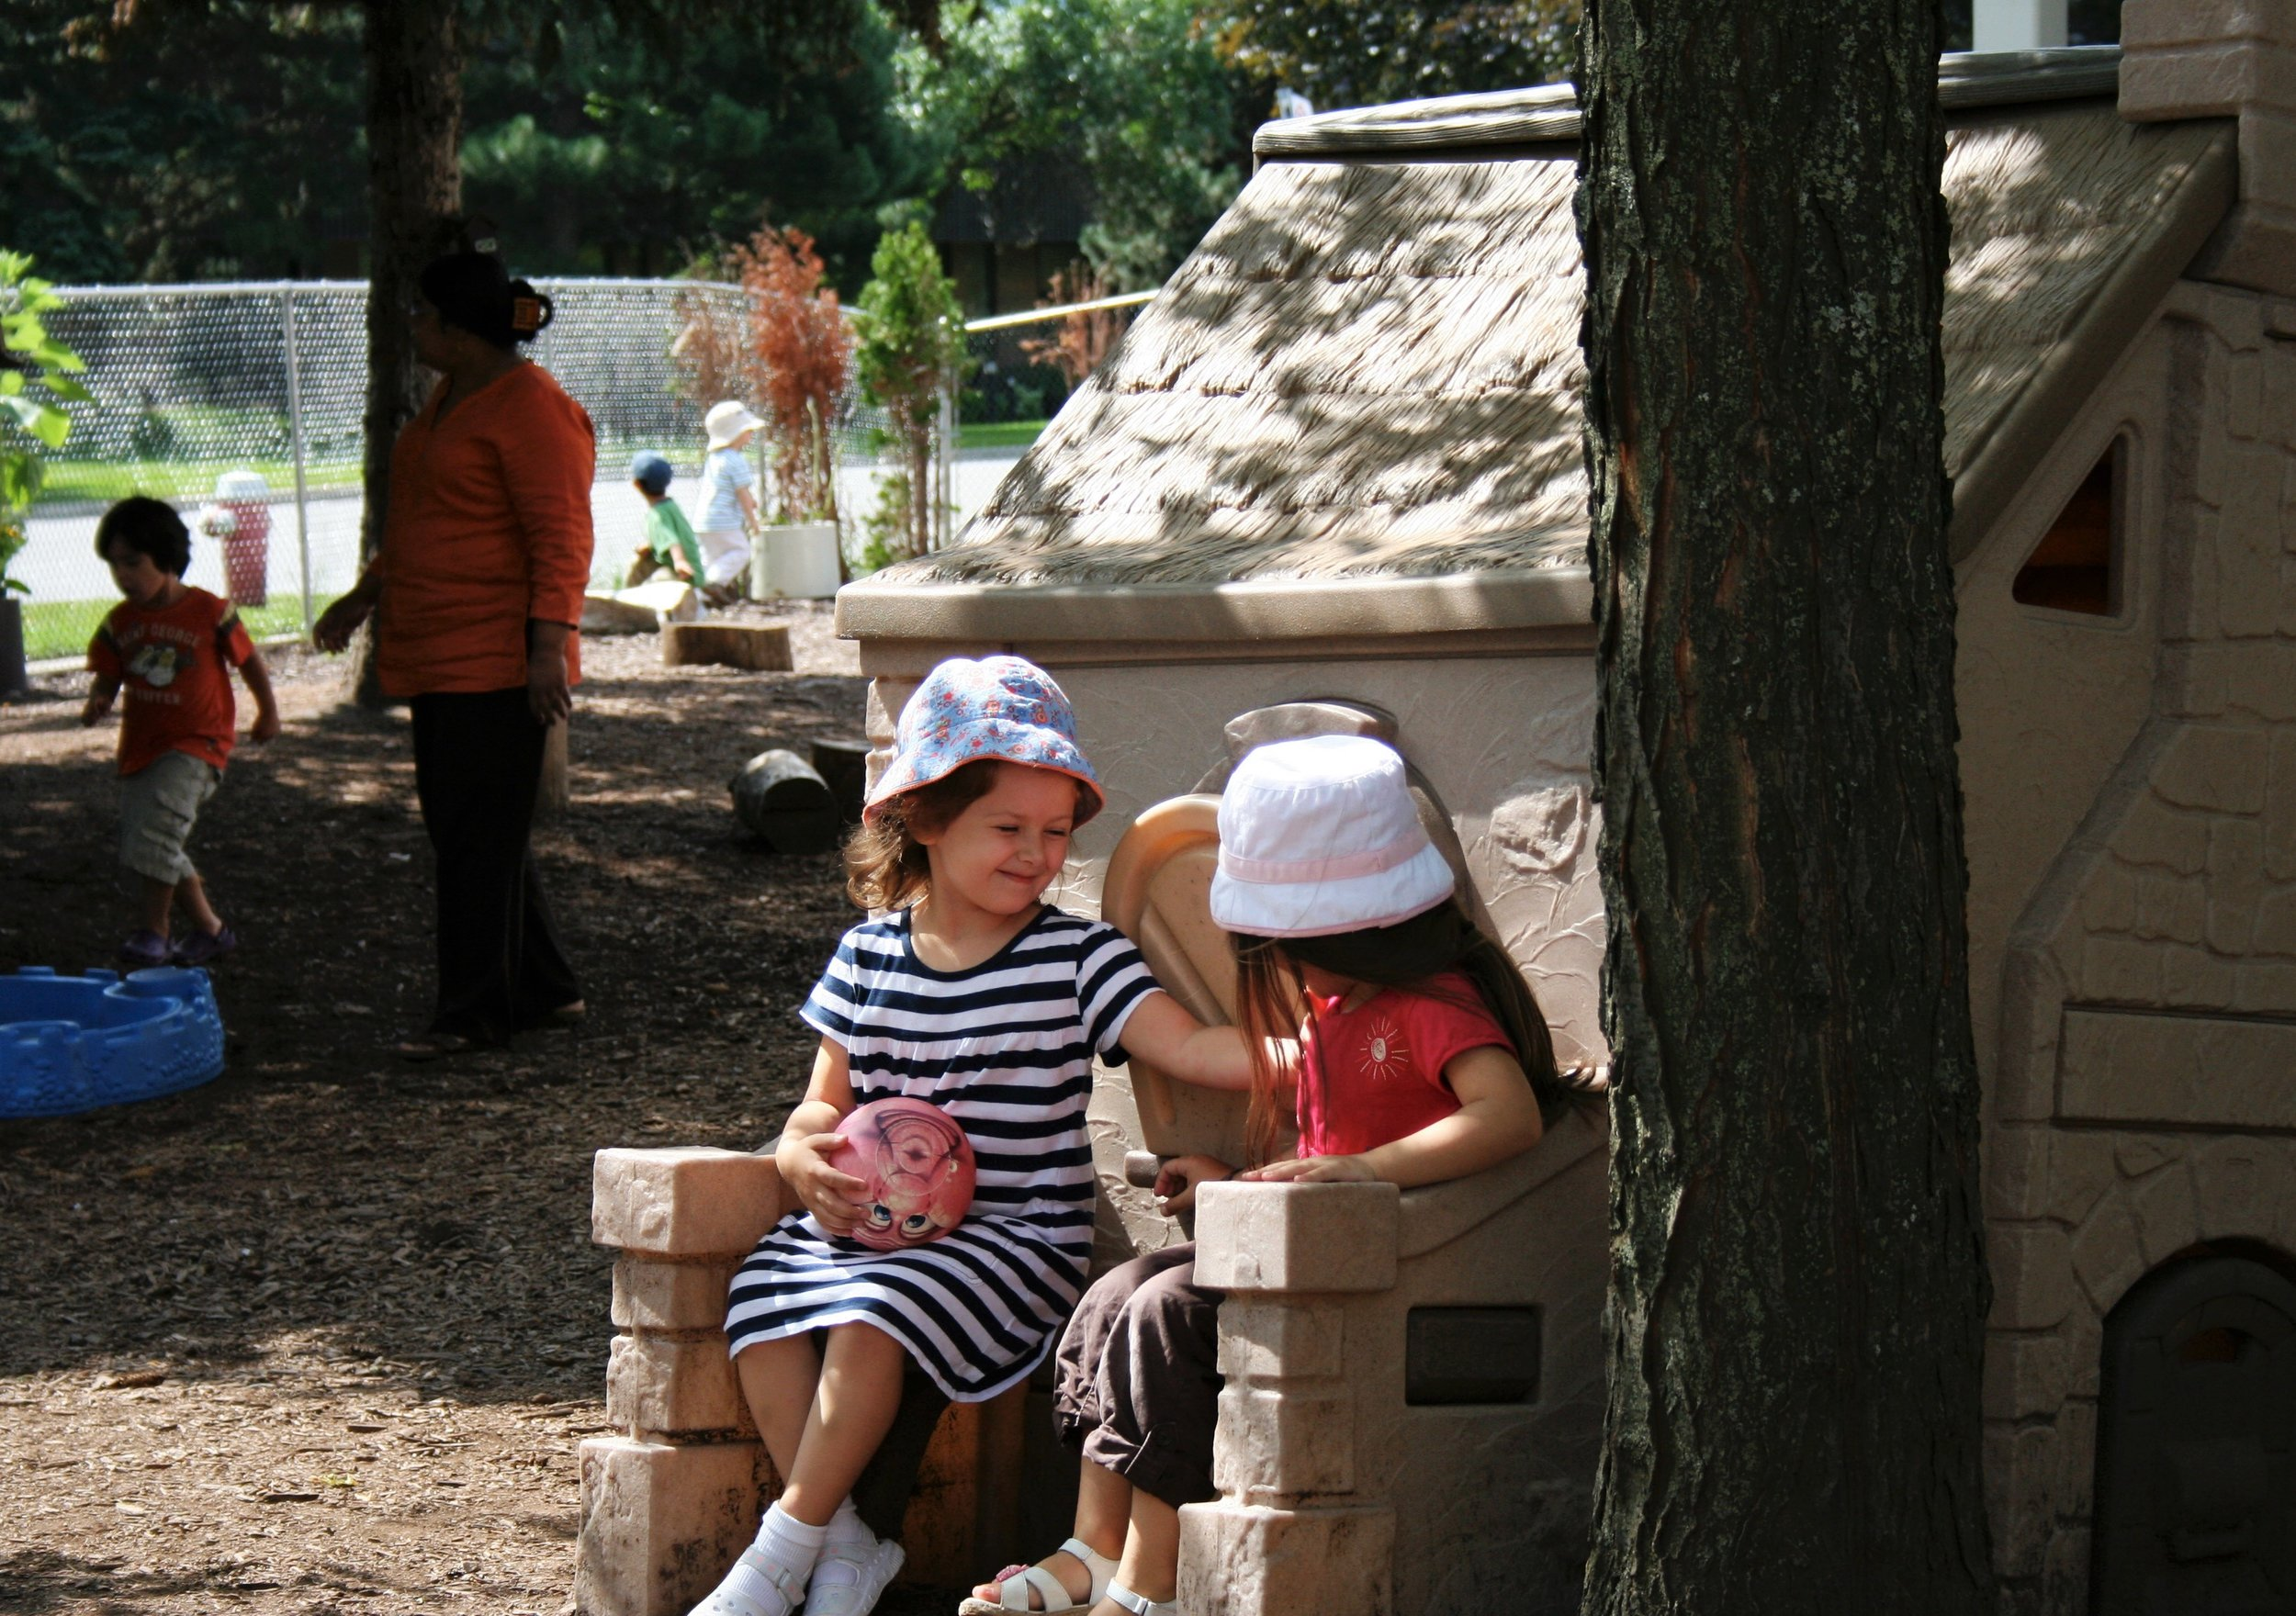 Children talking in school playground at Kaban Montesssori in Mississauga.